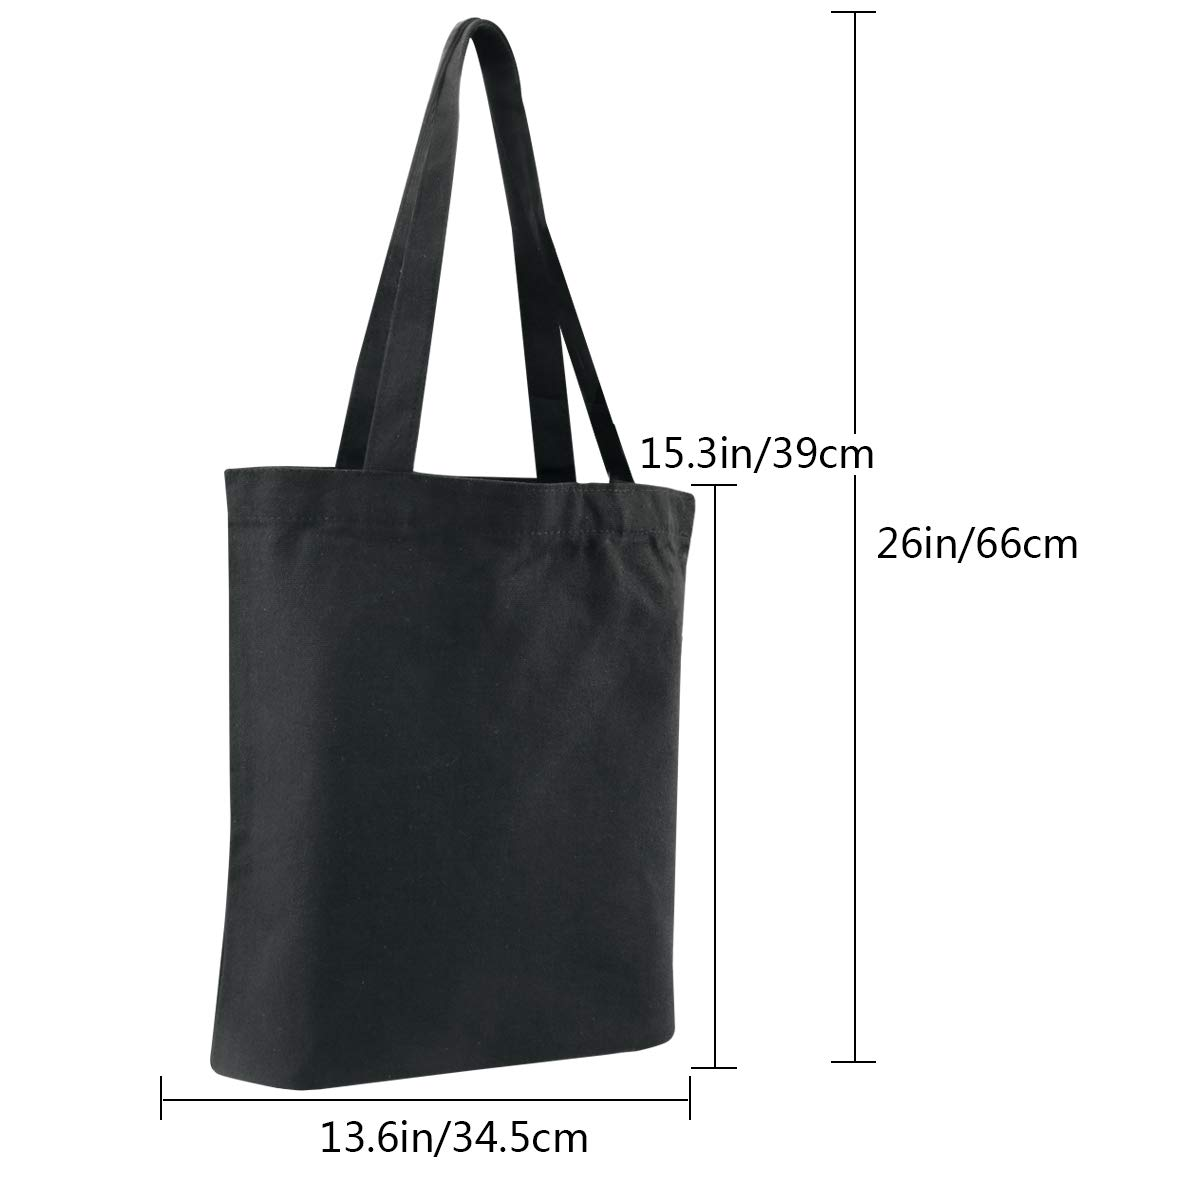 Faylapa 6Pack Canvas Tote Bags,Heavy Duty and Strong Shopping Grocery Bag Blank Cotton Bags for Decorating Crafts DIY,Painting Black 13.6x 15.3